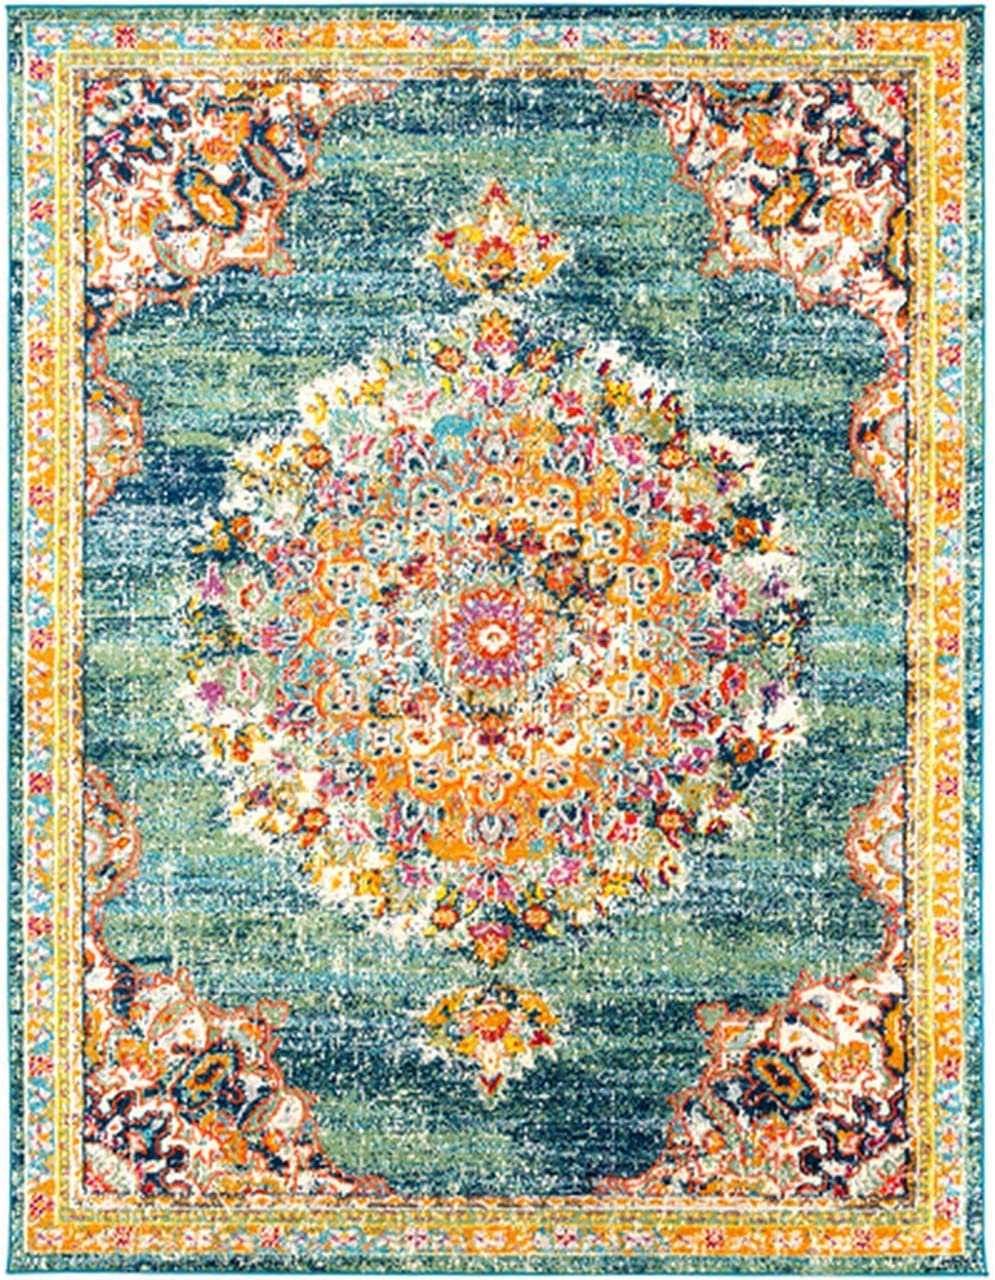 Tomales 7 10 x 10 3 Moroccan Bohemian Updated Traditional – Oriental Area Rug – Rectangle – Polypropylene – Teal, Navy, Pale Blue, Orange, Green, Red, Coral, Fuschia, Saffron, Yellow, Gray